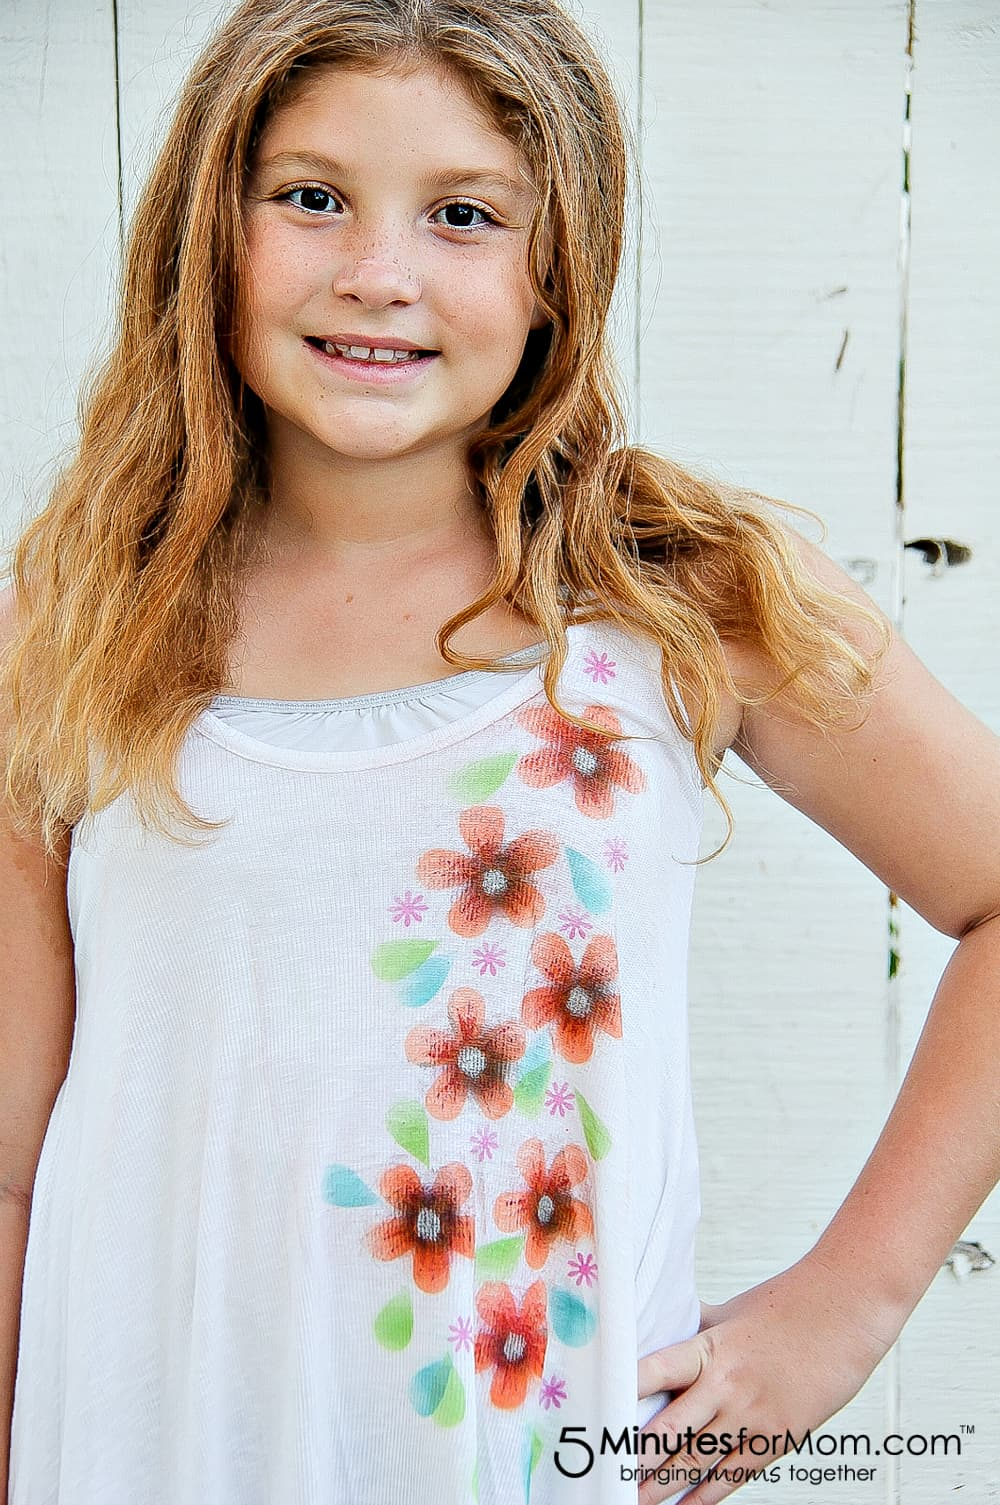 How to make custom airbrush flower shirts for little girls